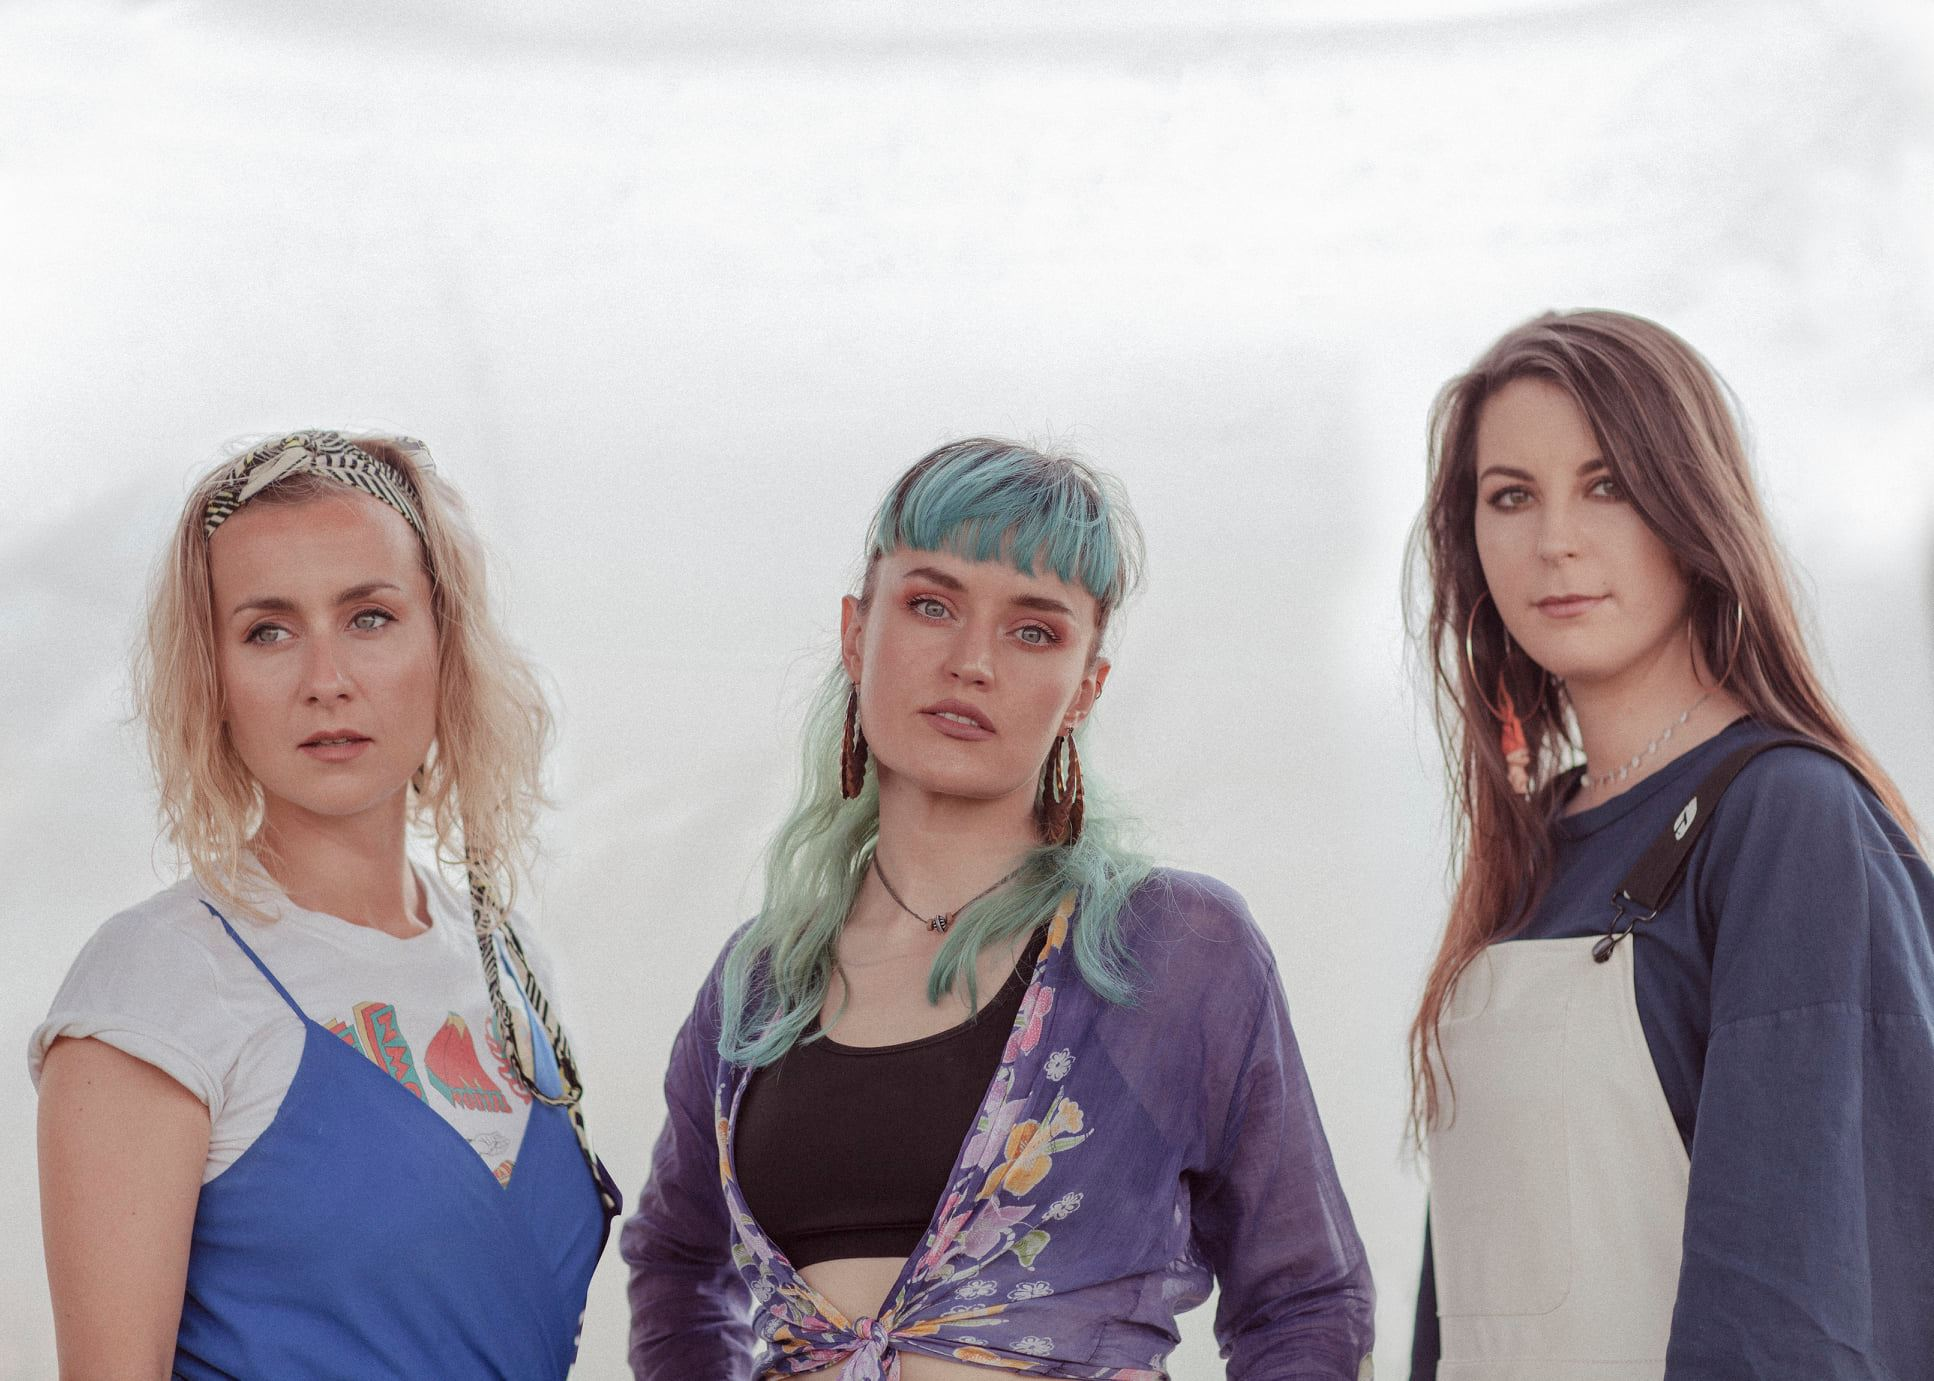 TLMT's The Week Featuring New Music From Wyvern Lingo, Gemma Bradley, Patricia Lalor, Joshua Burnside, My Sweet Beloved, Gemma Dunleavy, Sisterix, Elaine Mai, the Academic, God Creative, Moon Looks On & Niamh Regan